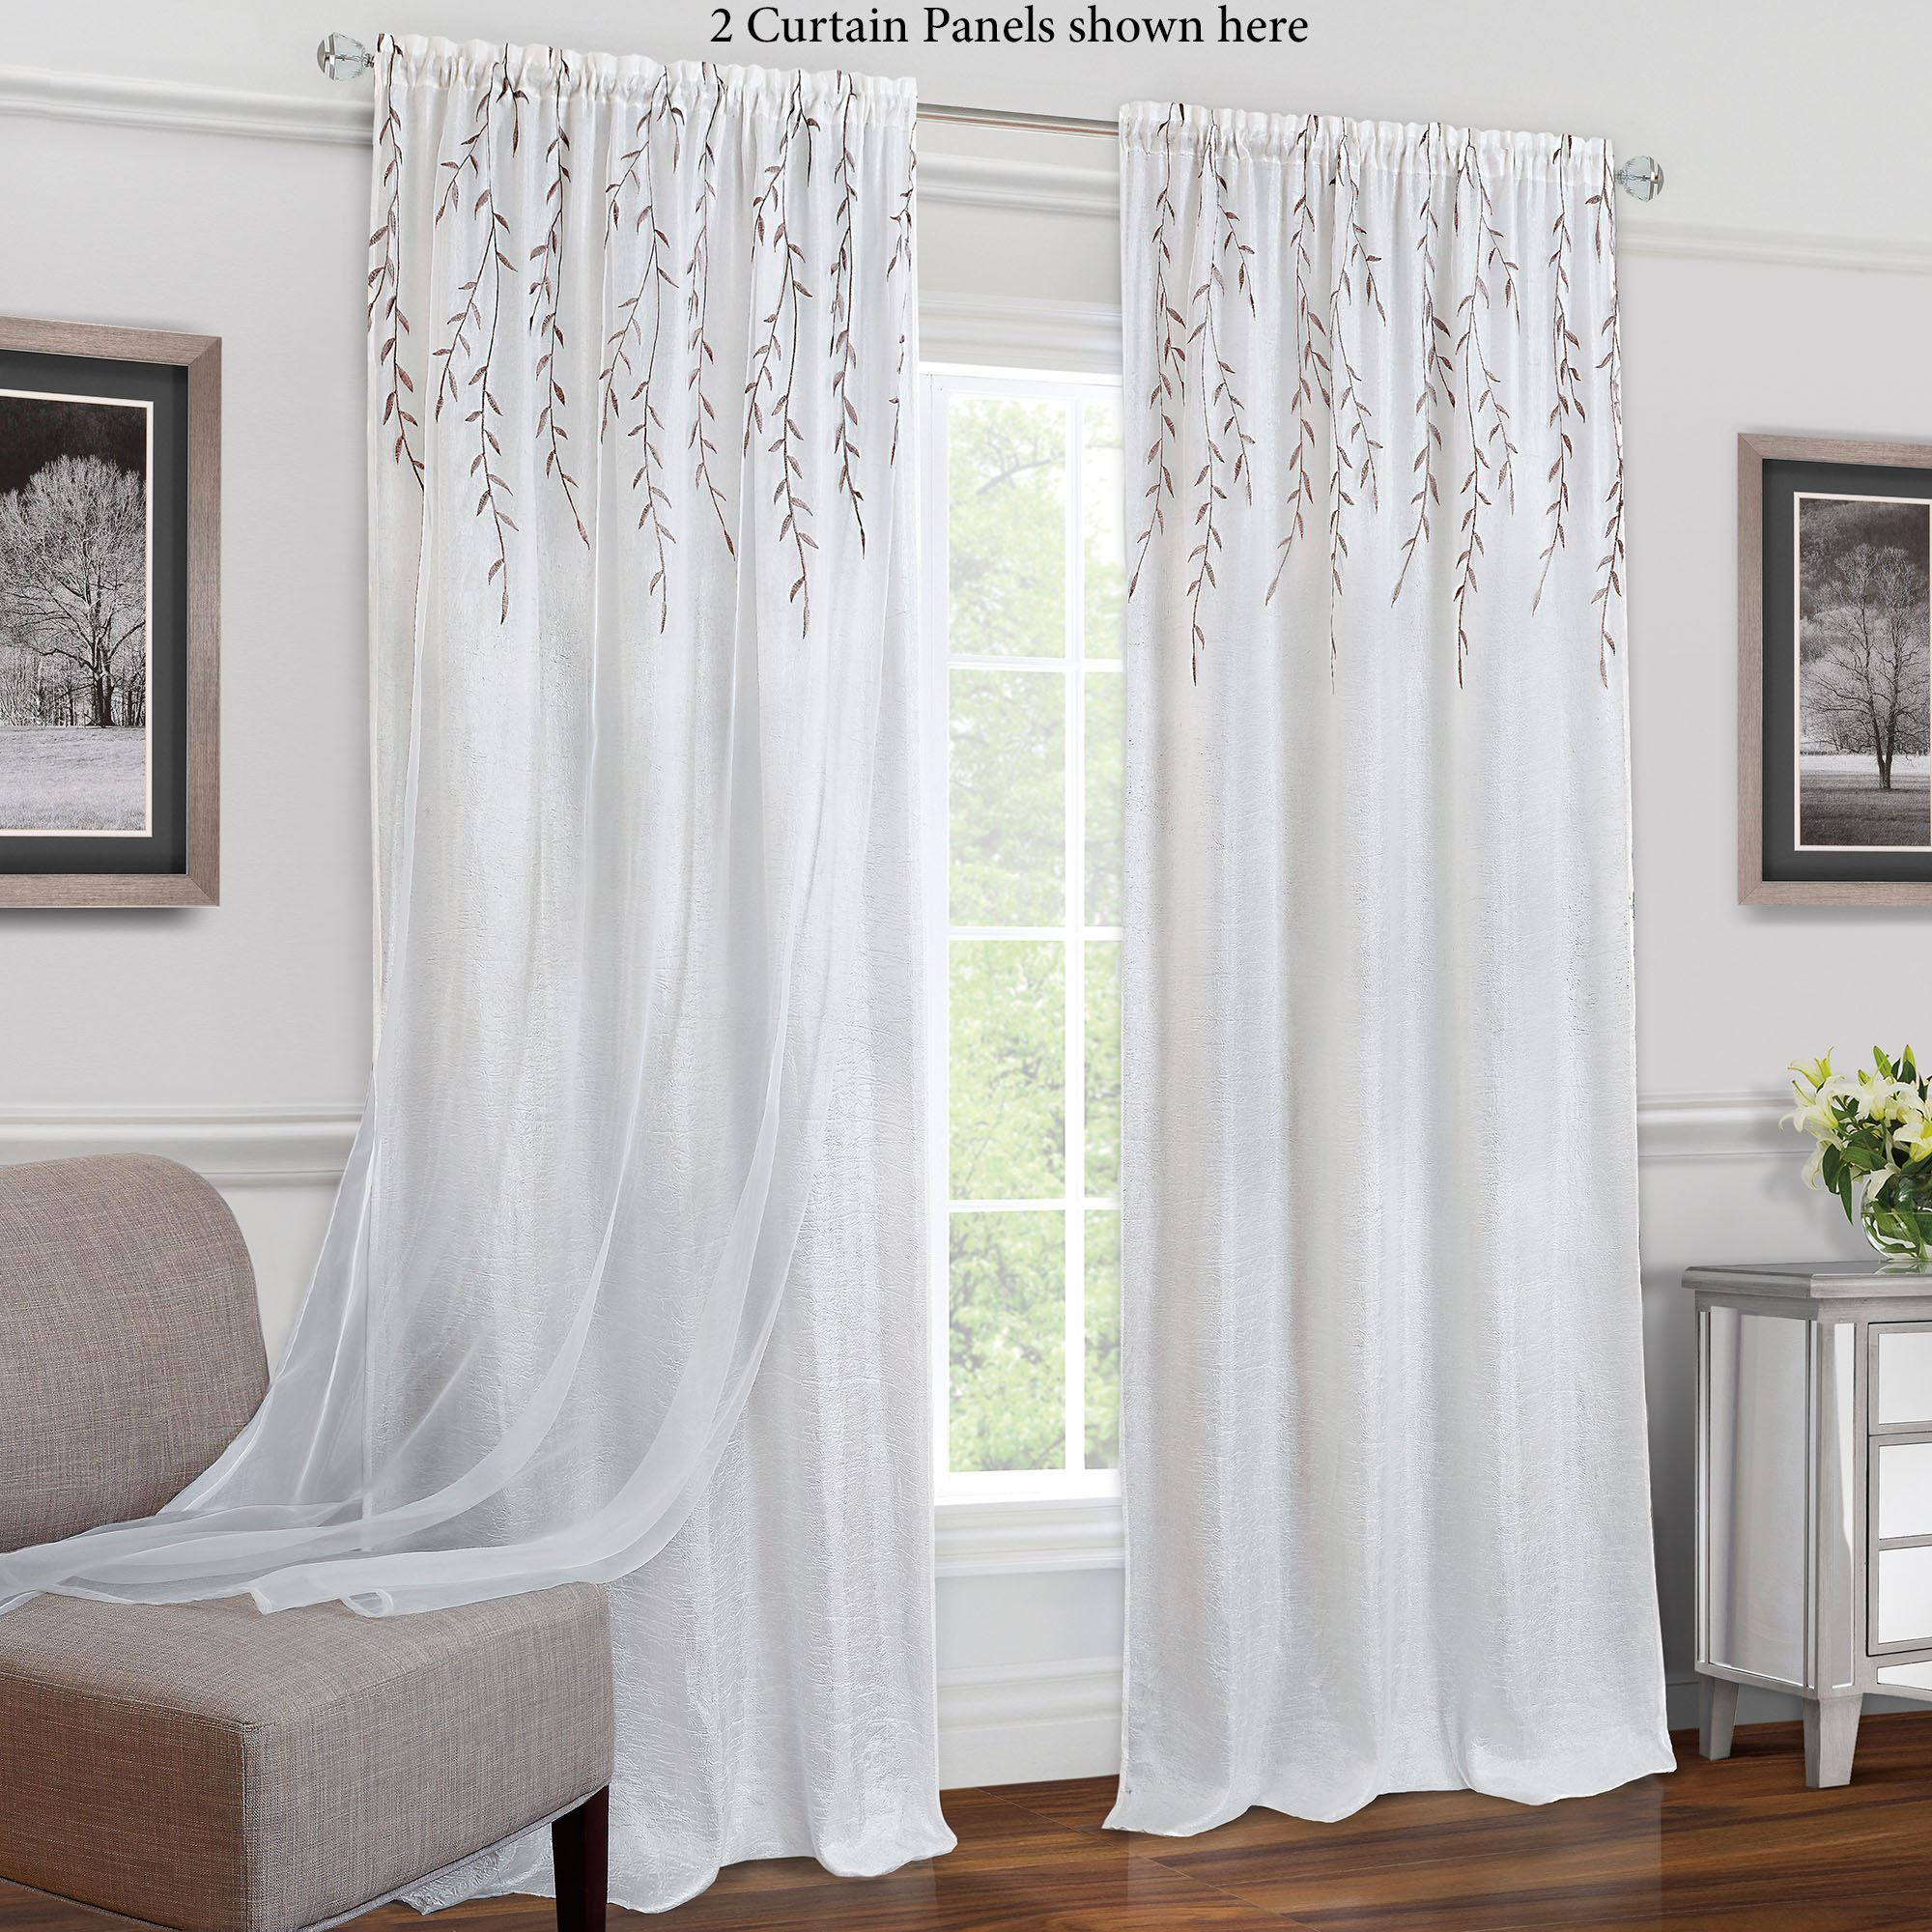 Caradan Embroidered White Curtain Panel